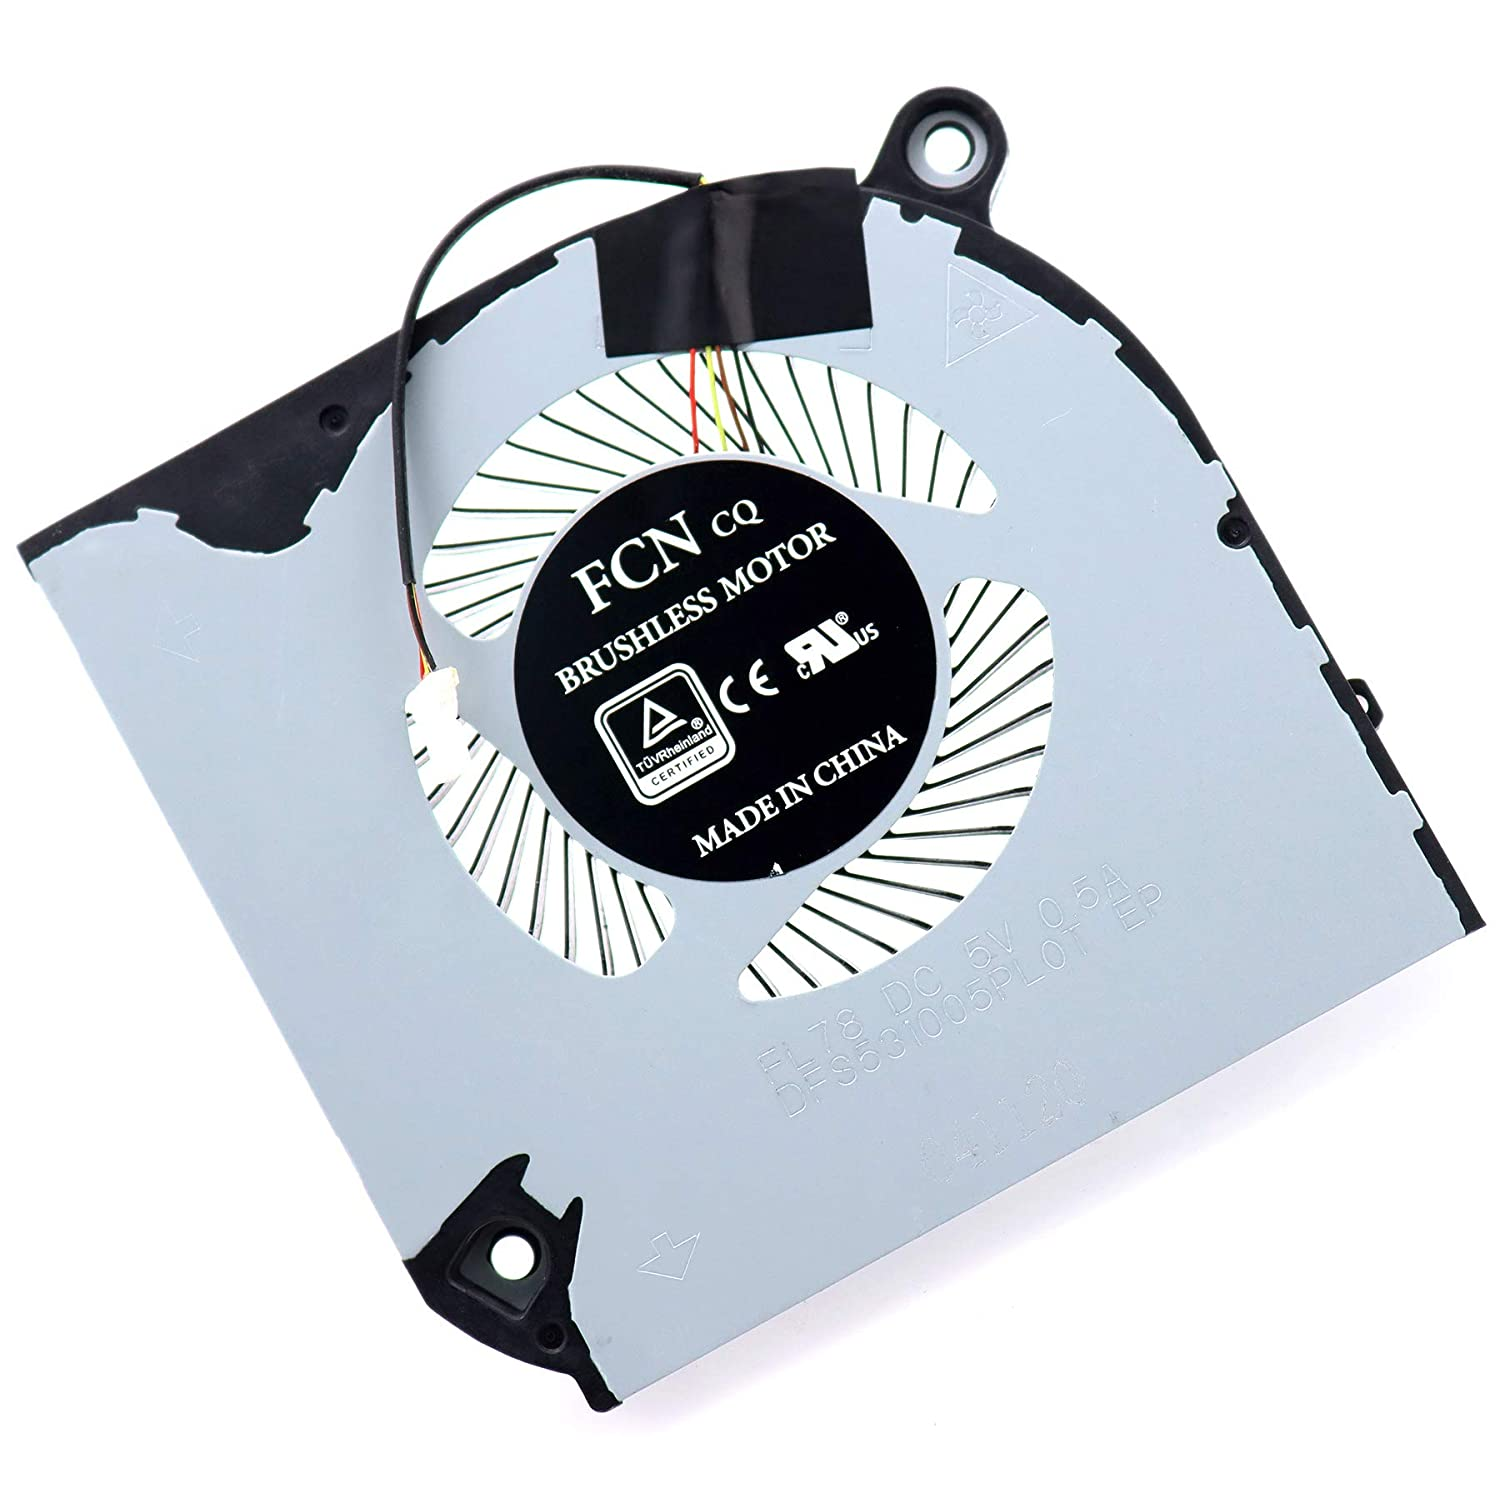 Deal4GO CPU Cooling Fan Left Side FL78 DFS531005PL0T Replacement for Acer Aspire Nitro 5 AN515-54 AN515-43 AN517-51 Nitro 7 AN715-51